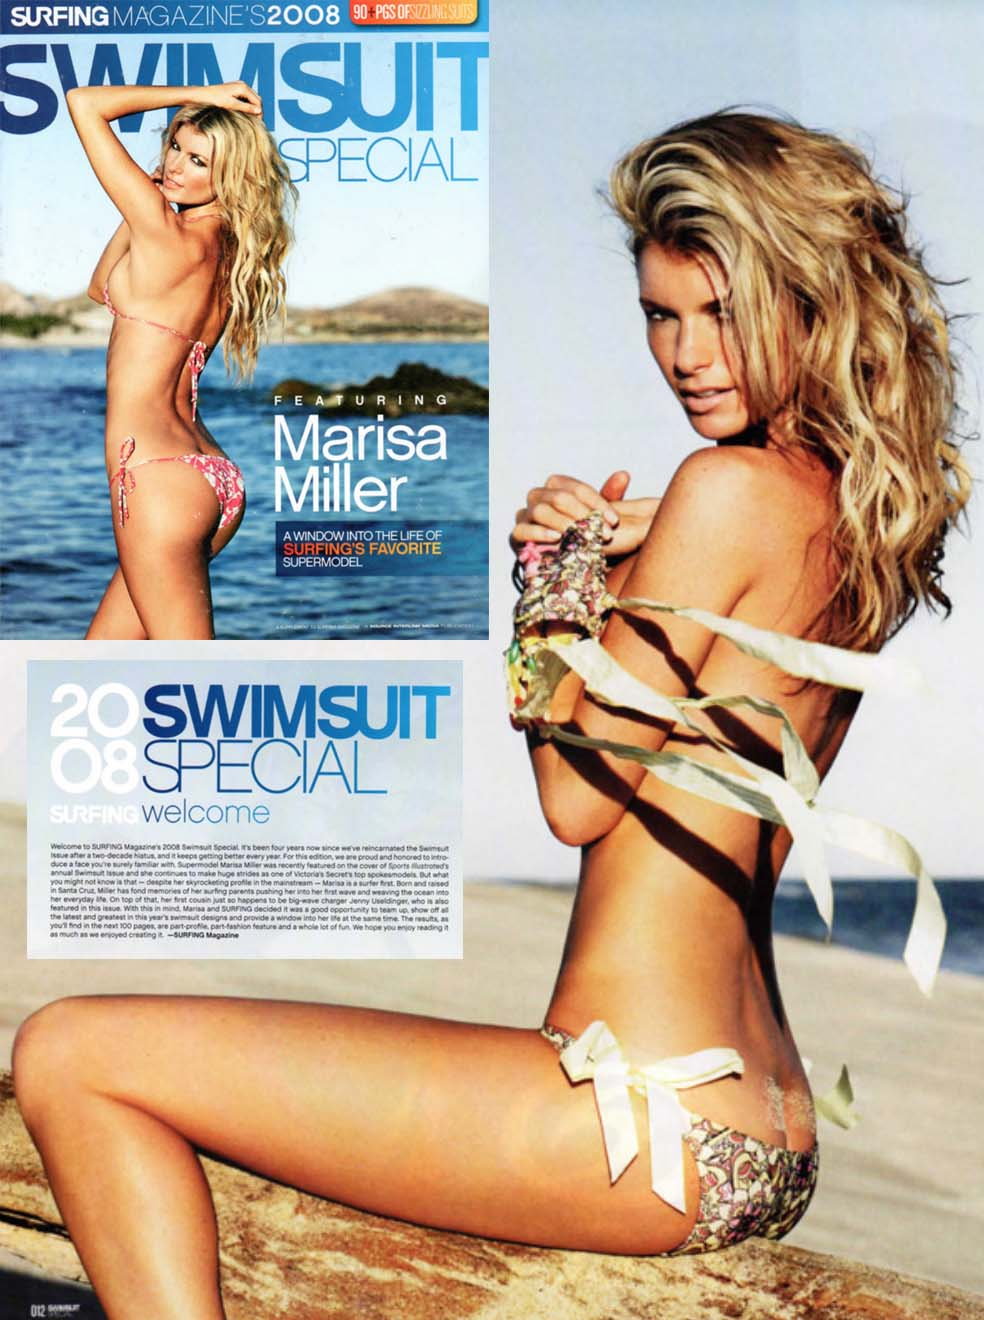 La Isla. Holiday print as seen in Surfing Magazine Swimsuit Special.